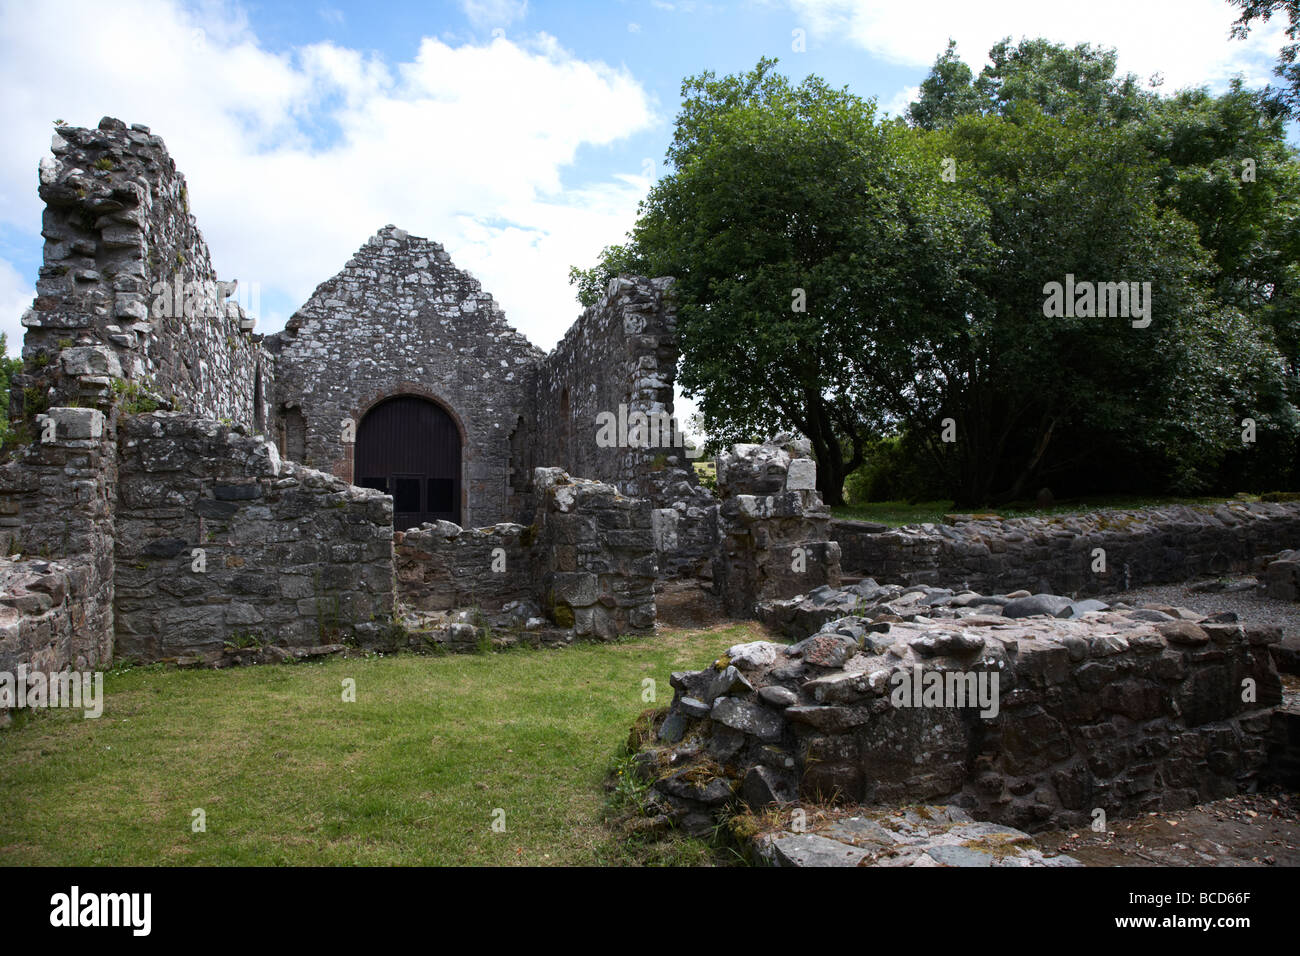 dungiven priory county county derry londonderry northern ireland uk - Stock Image